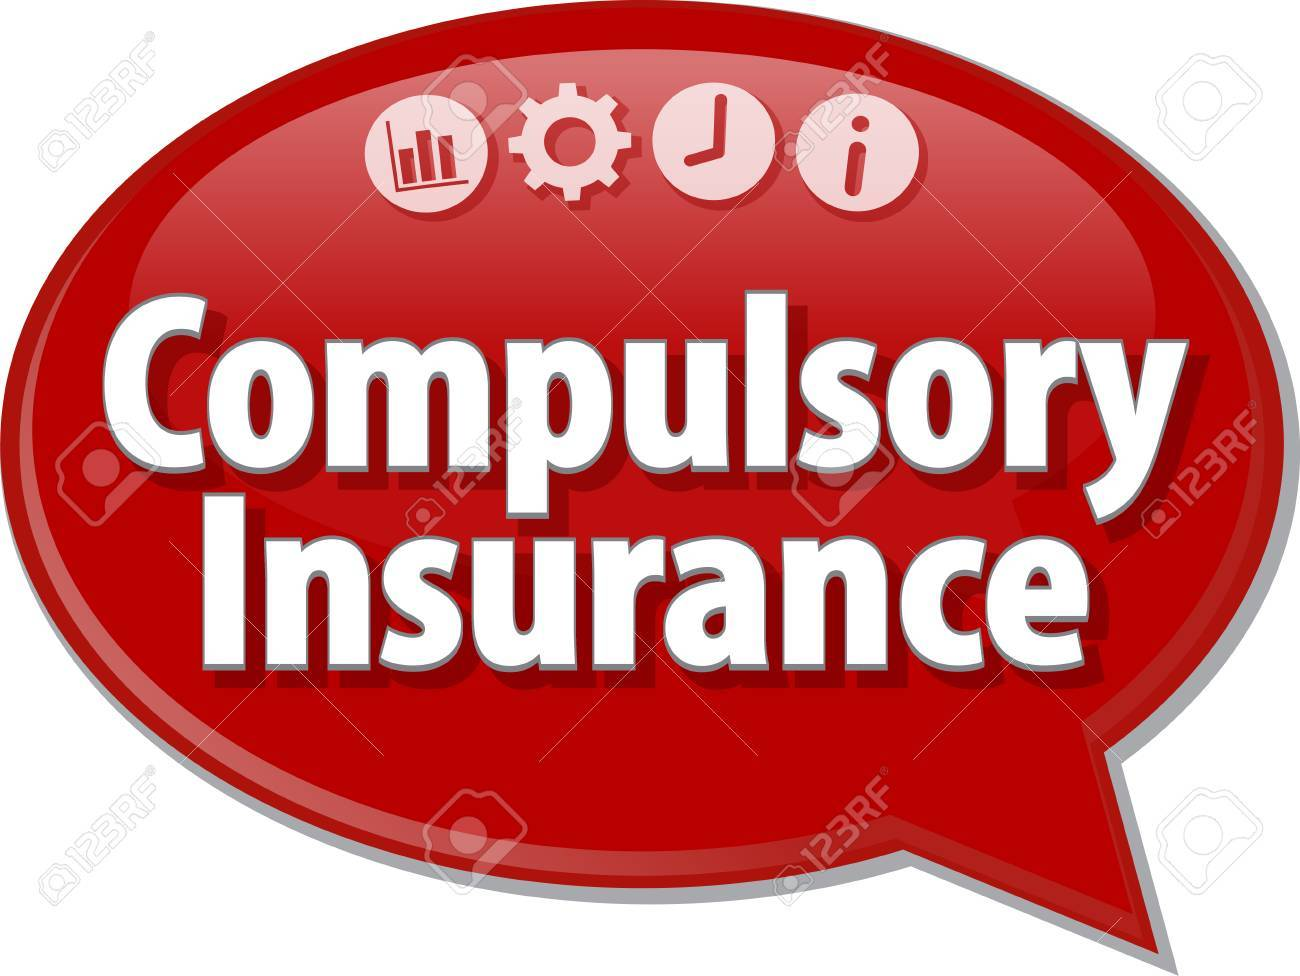 What is compulsory insurance 92